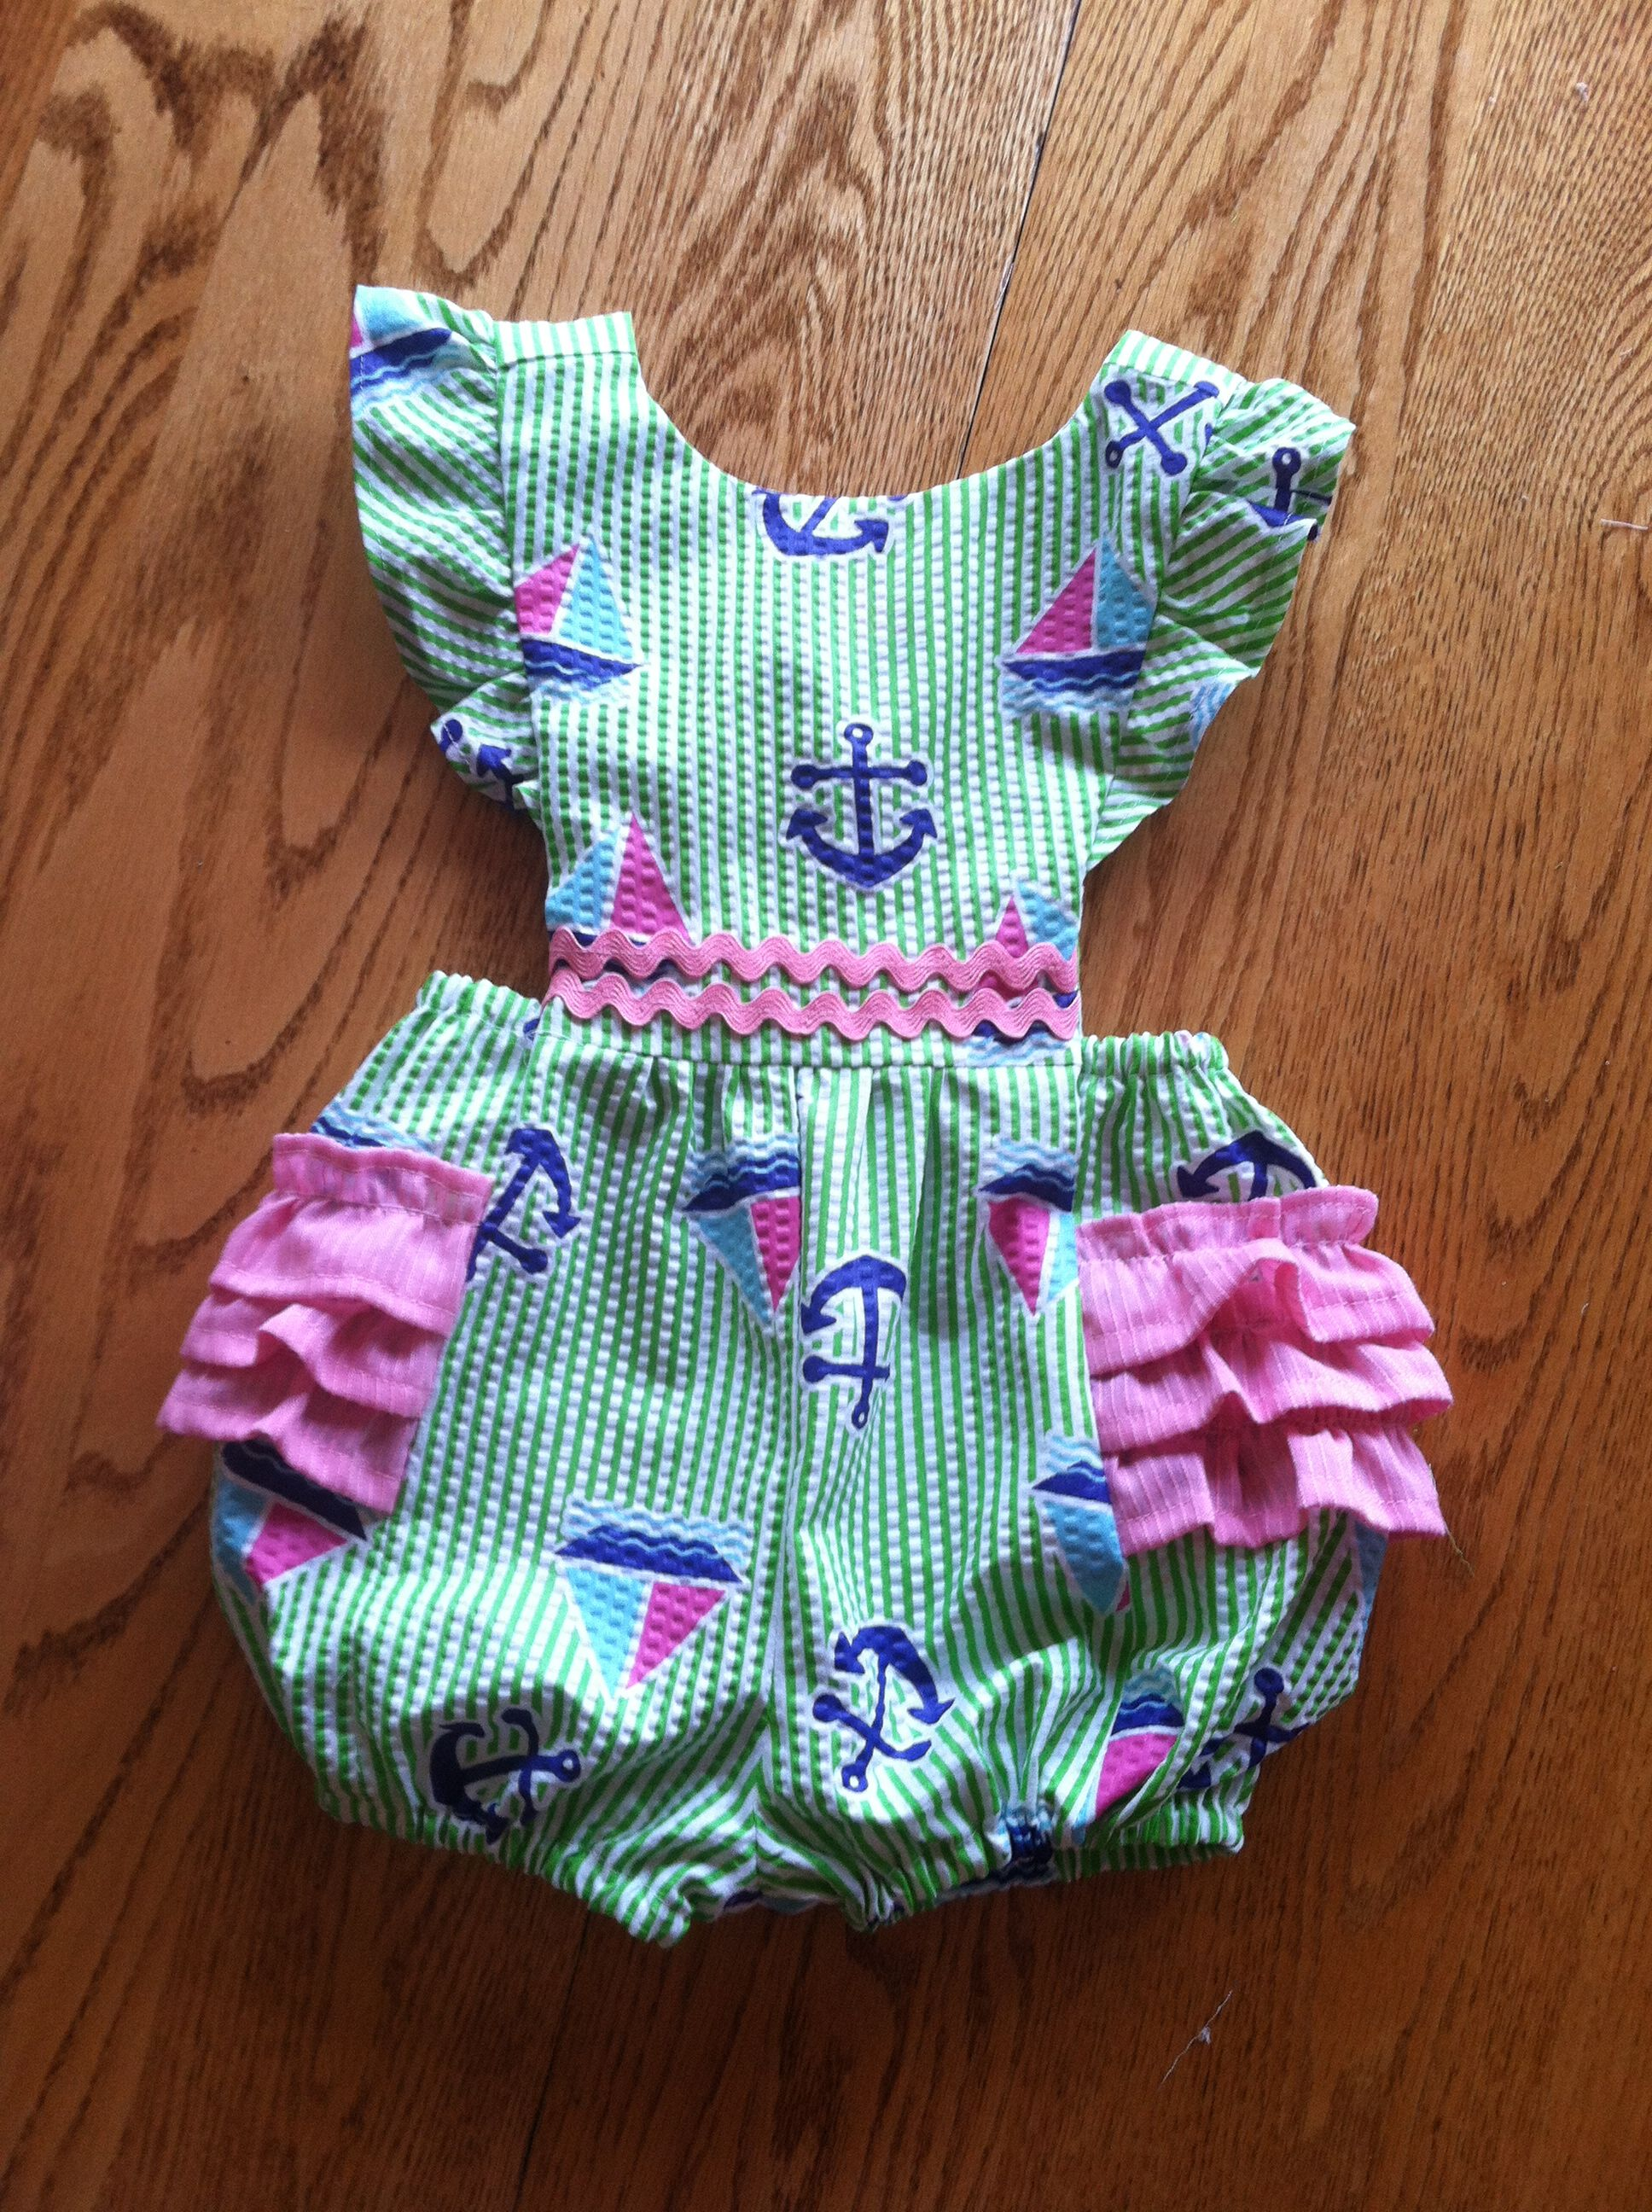 Diy baby romper baby clothes patterns girl clothes diy